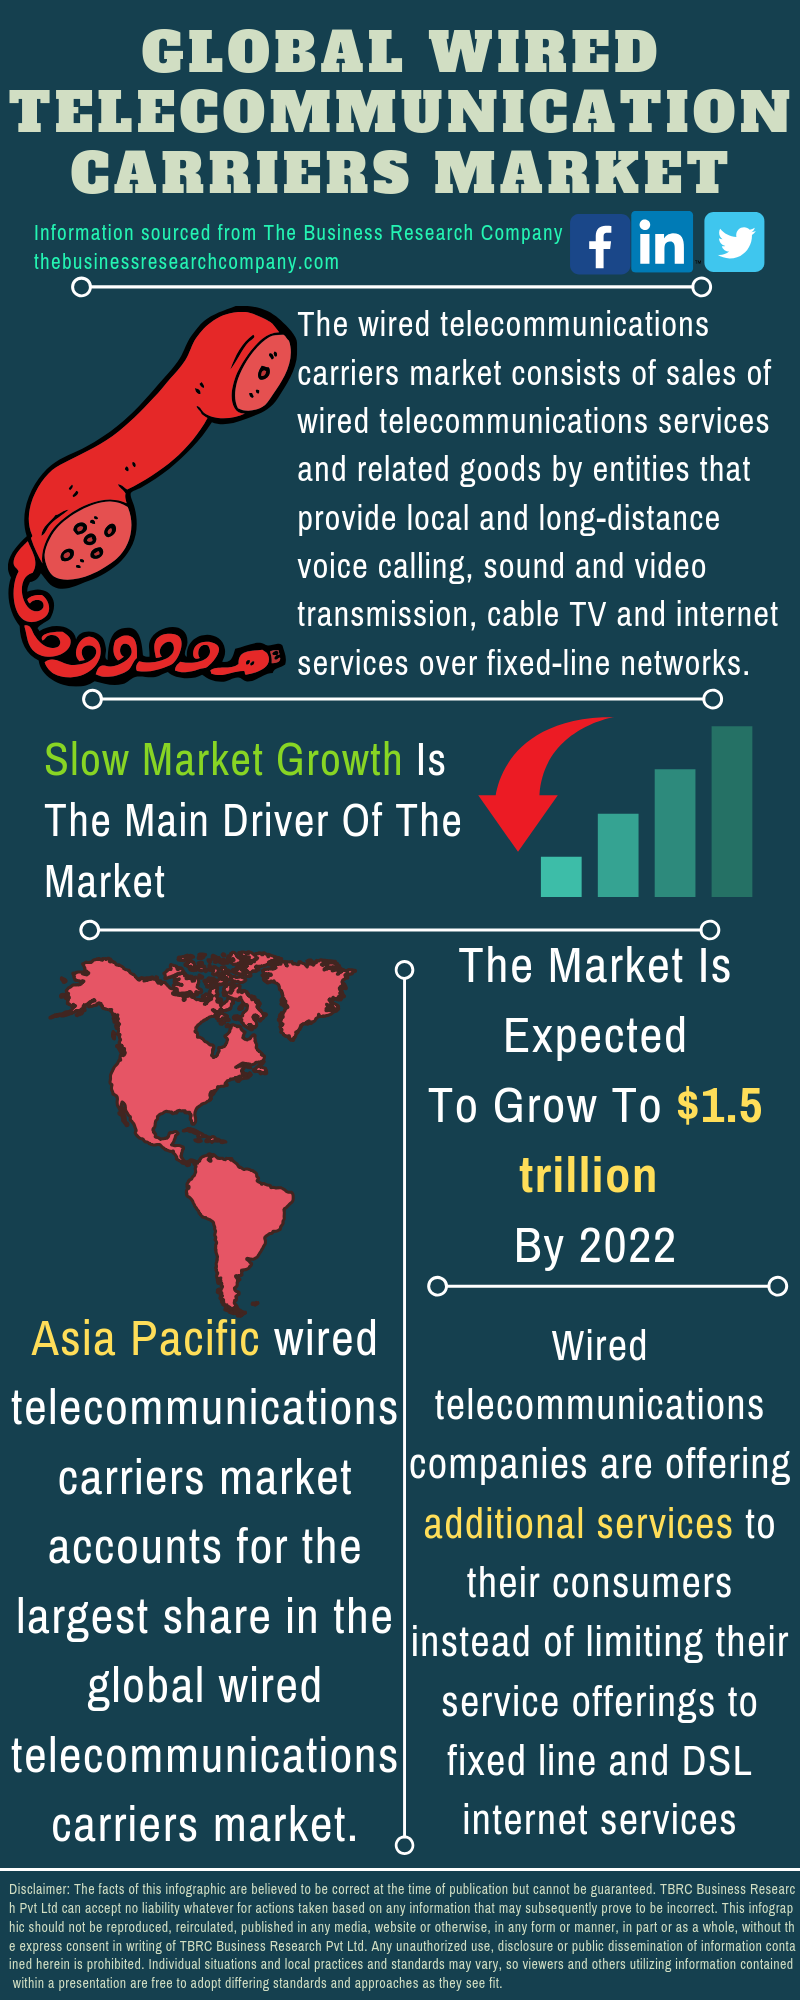 Wired Telecommunication Carriers Market